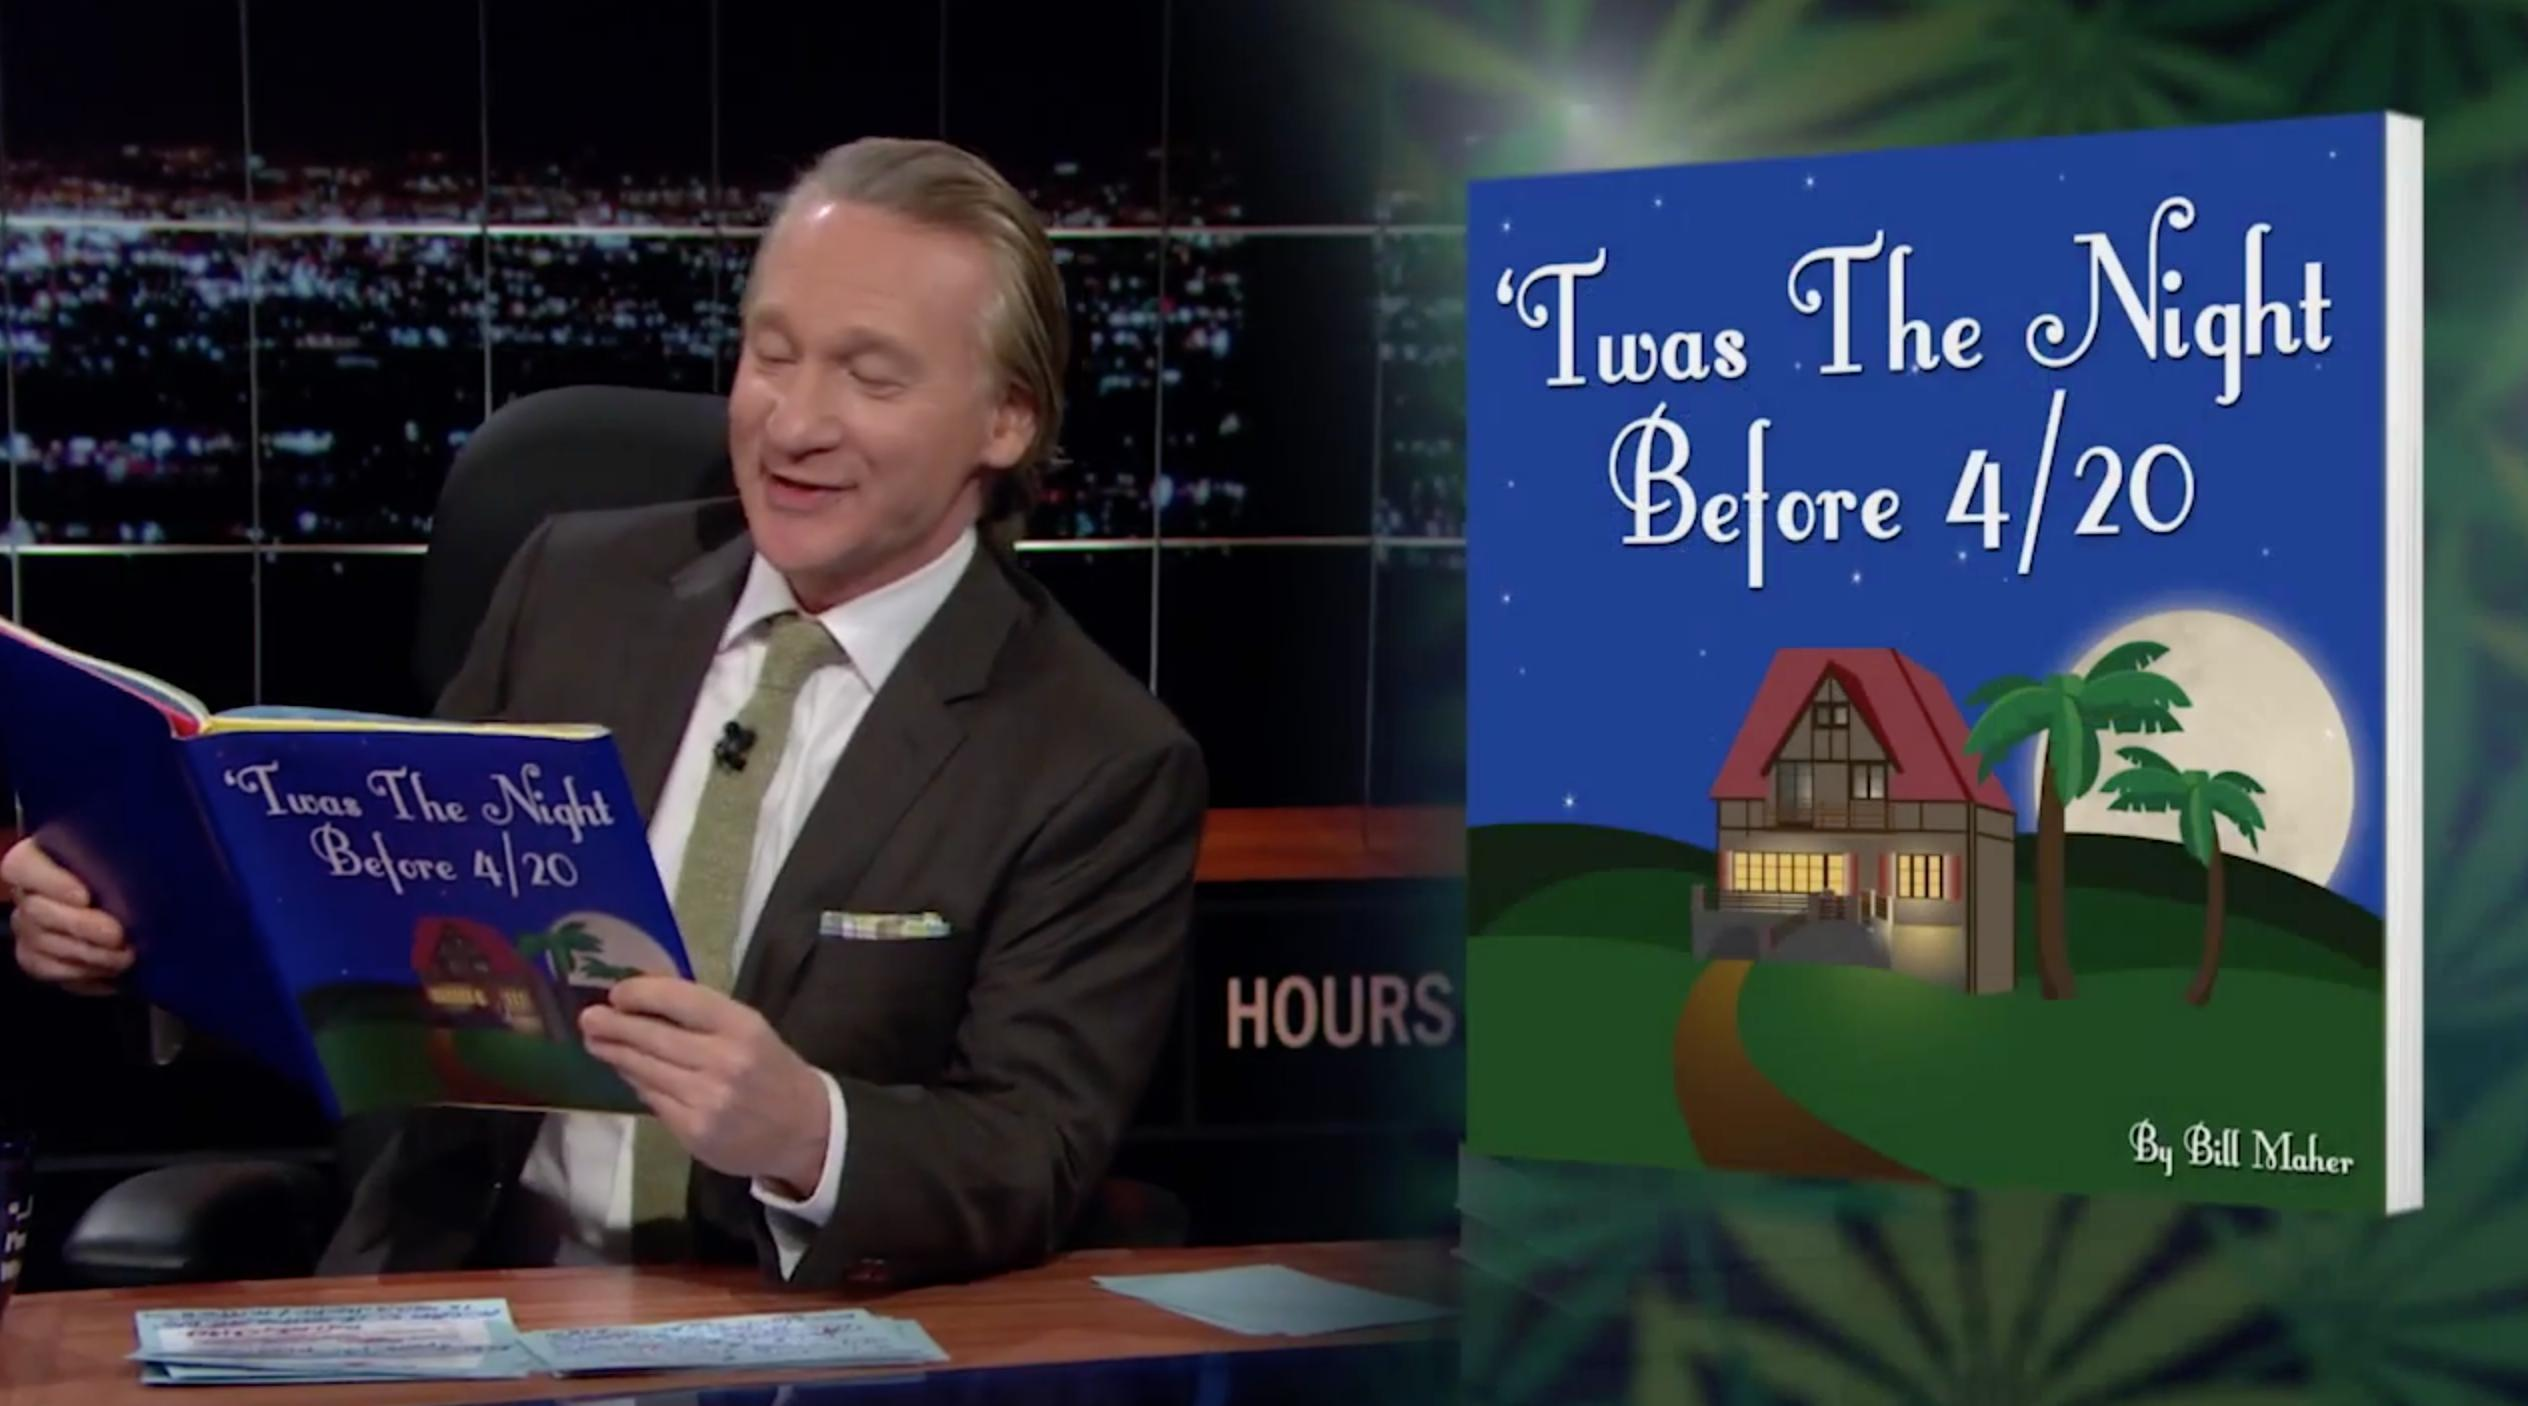 Bill Maher is Using Change.org to Make 4/20 an Official Holiday